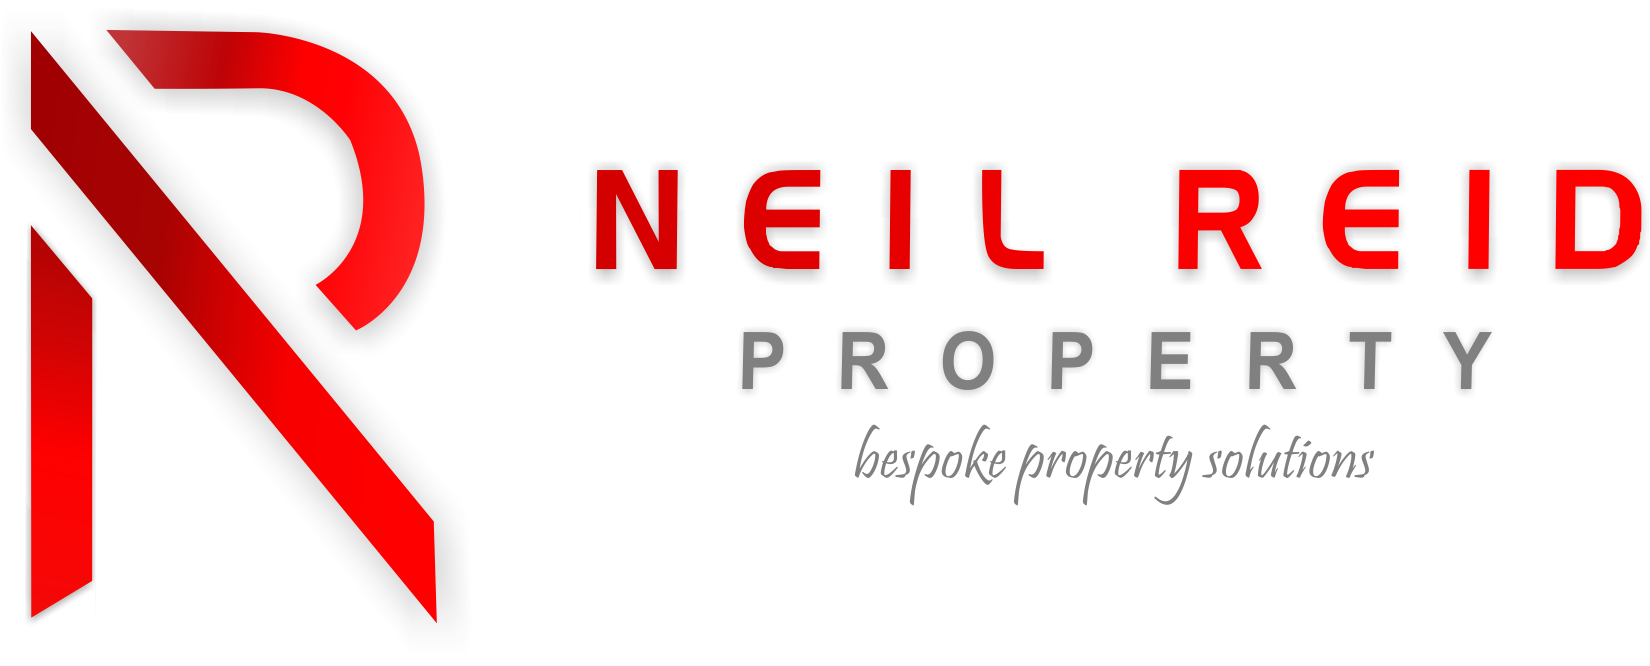 Neil Reid Property Logo Final File 1